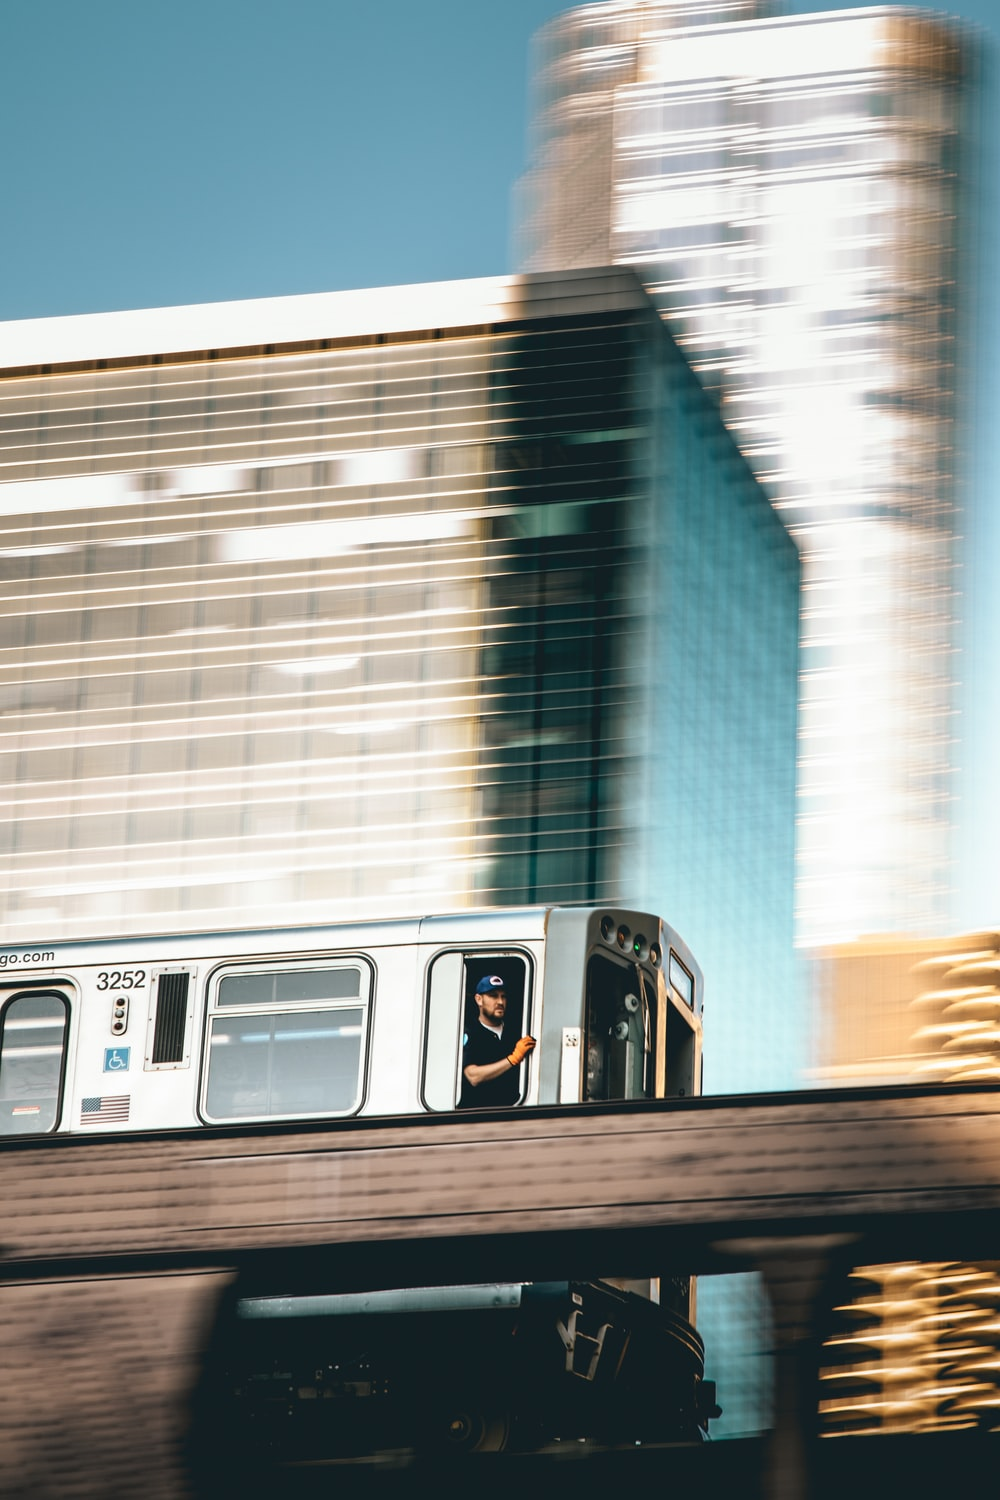 focus photography of person riding gray train